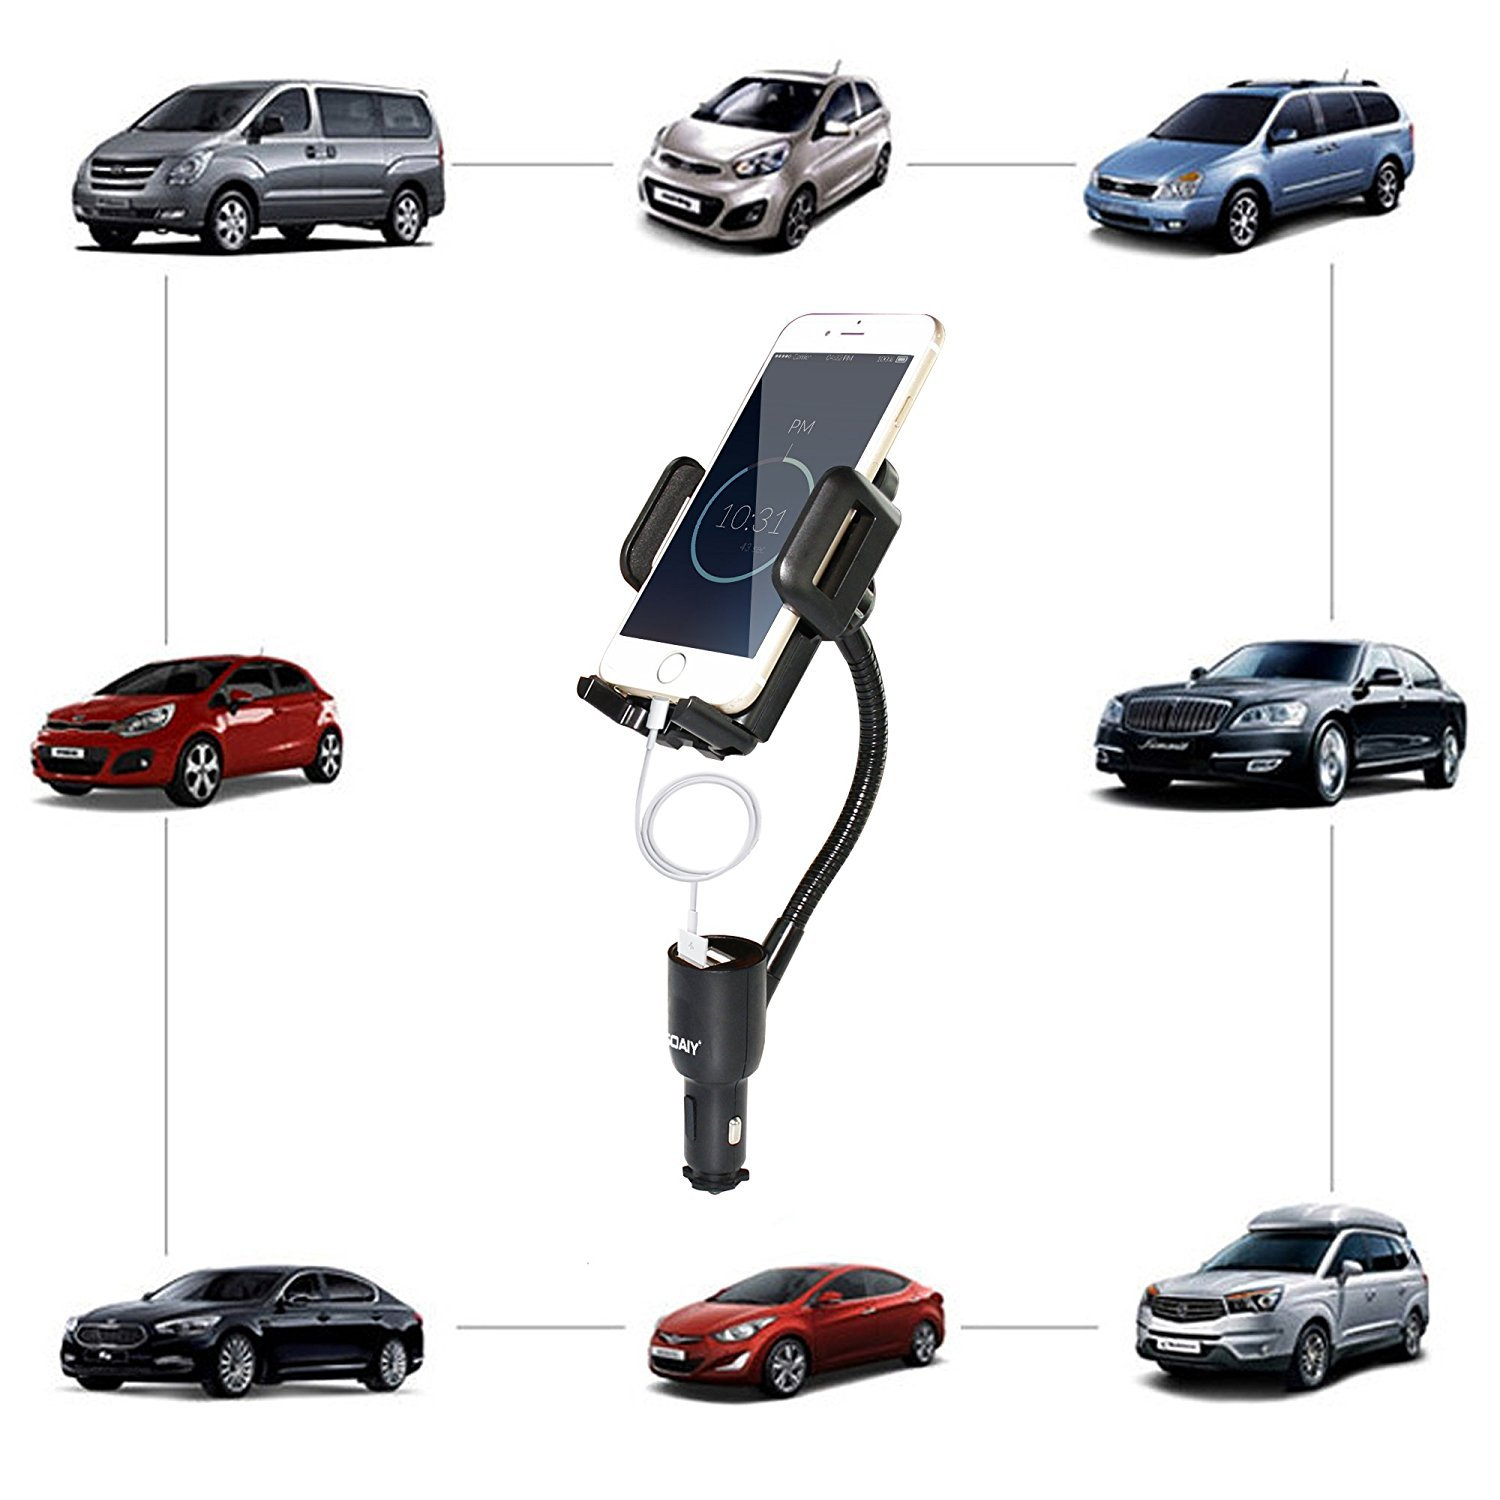 3-in-1 Cigarette Lighter Car Mount + Voltage Detector, SOAIY Car Mount Charger Holder Cradle w/Dual USB 3.1A Charger, Display Voltage Current Compatible with iPhone8 X 7 6s 6 5s Samsung S8 S7 S6 S5 by SOAIY (Image #8)